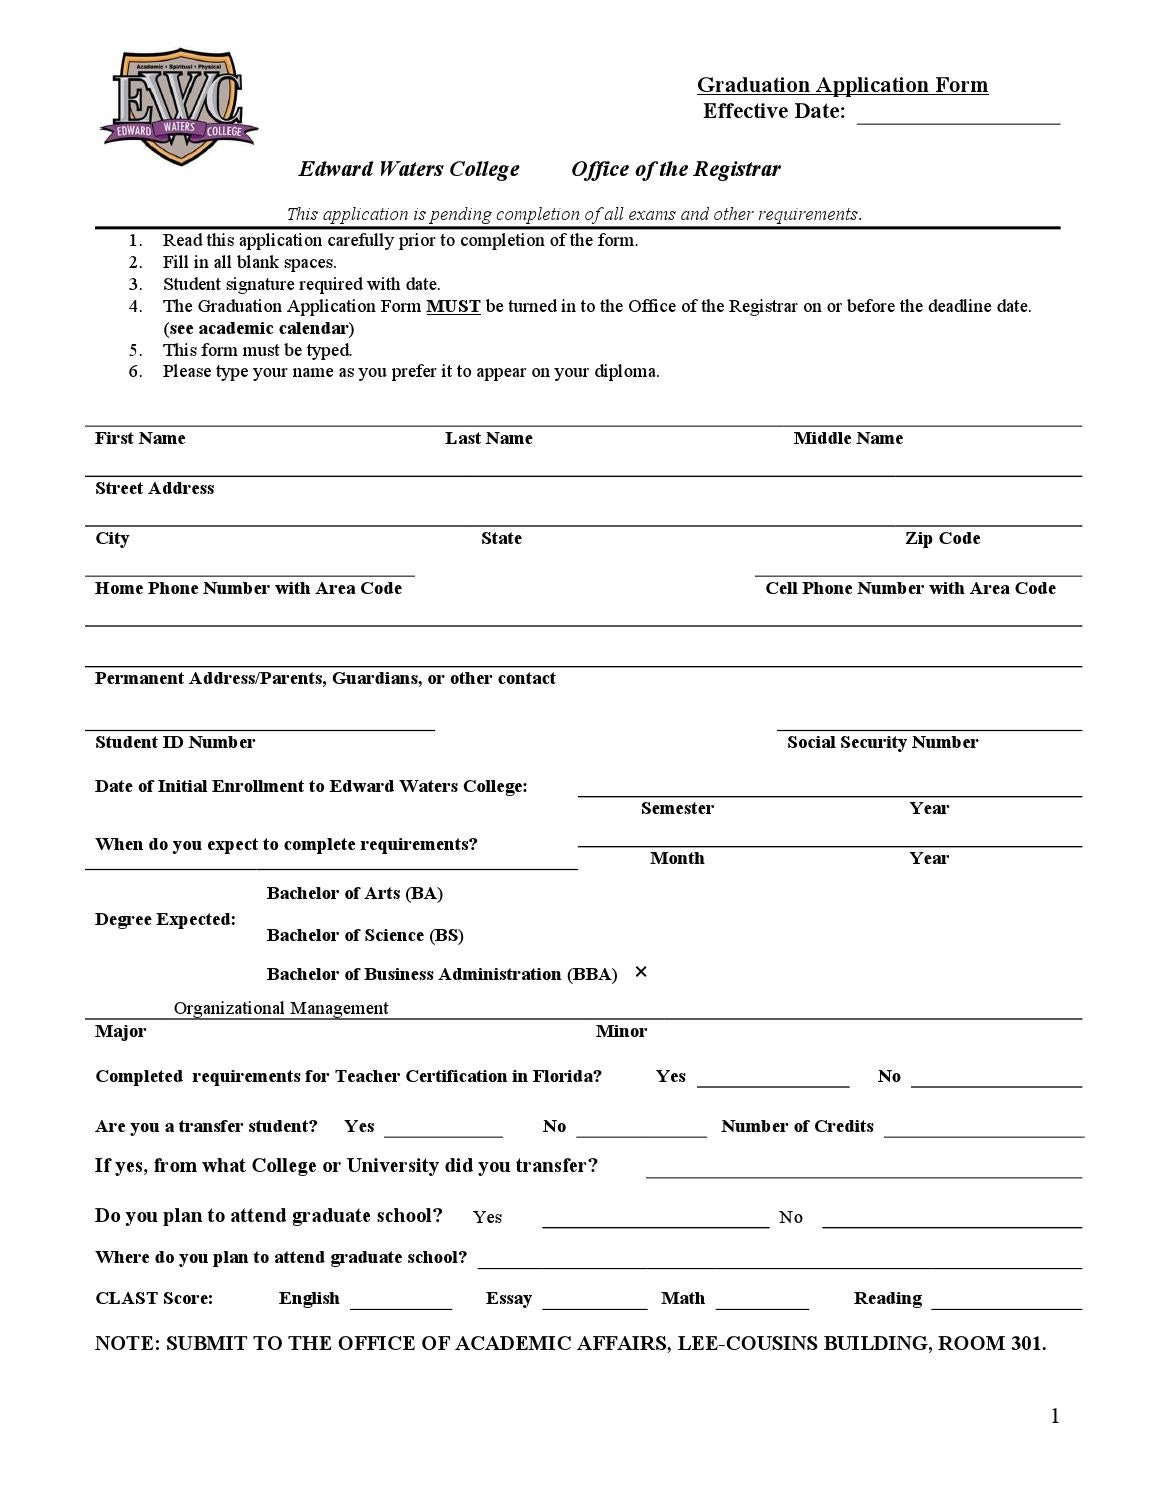 Graduation Application 2014-2015 by Edward Waters College